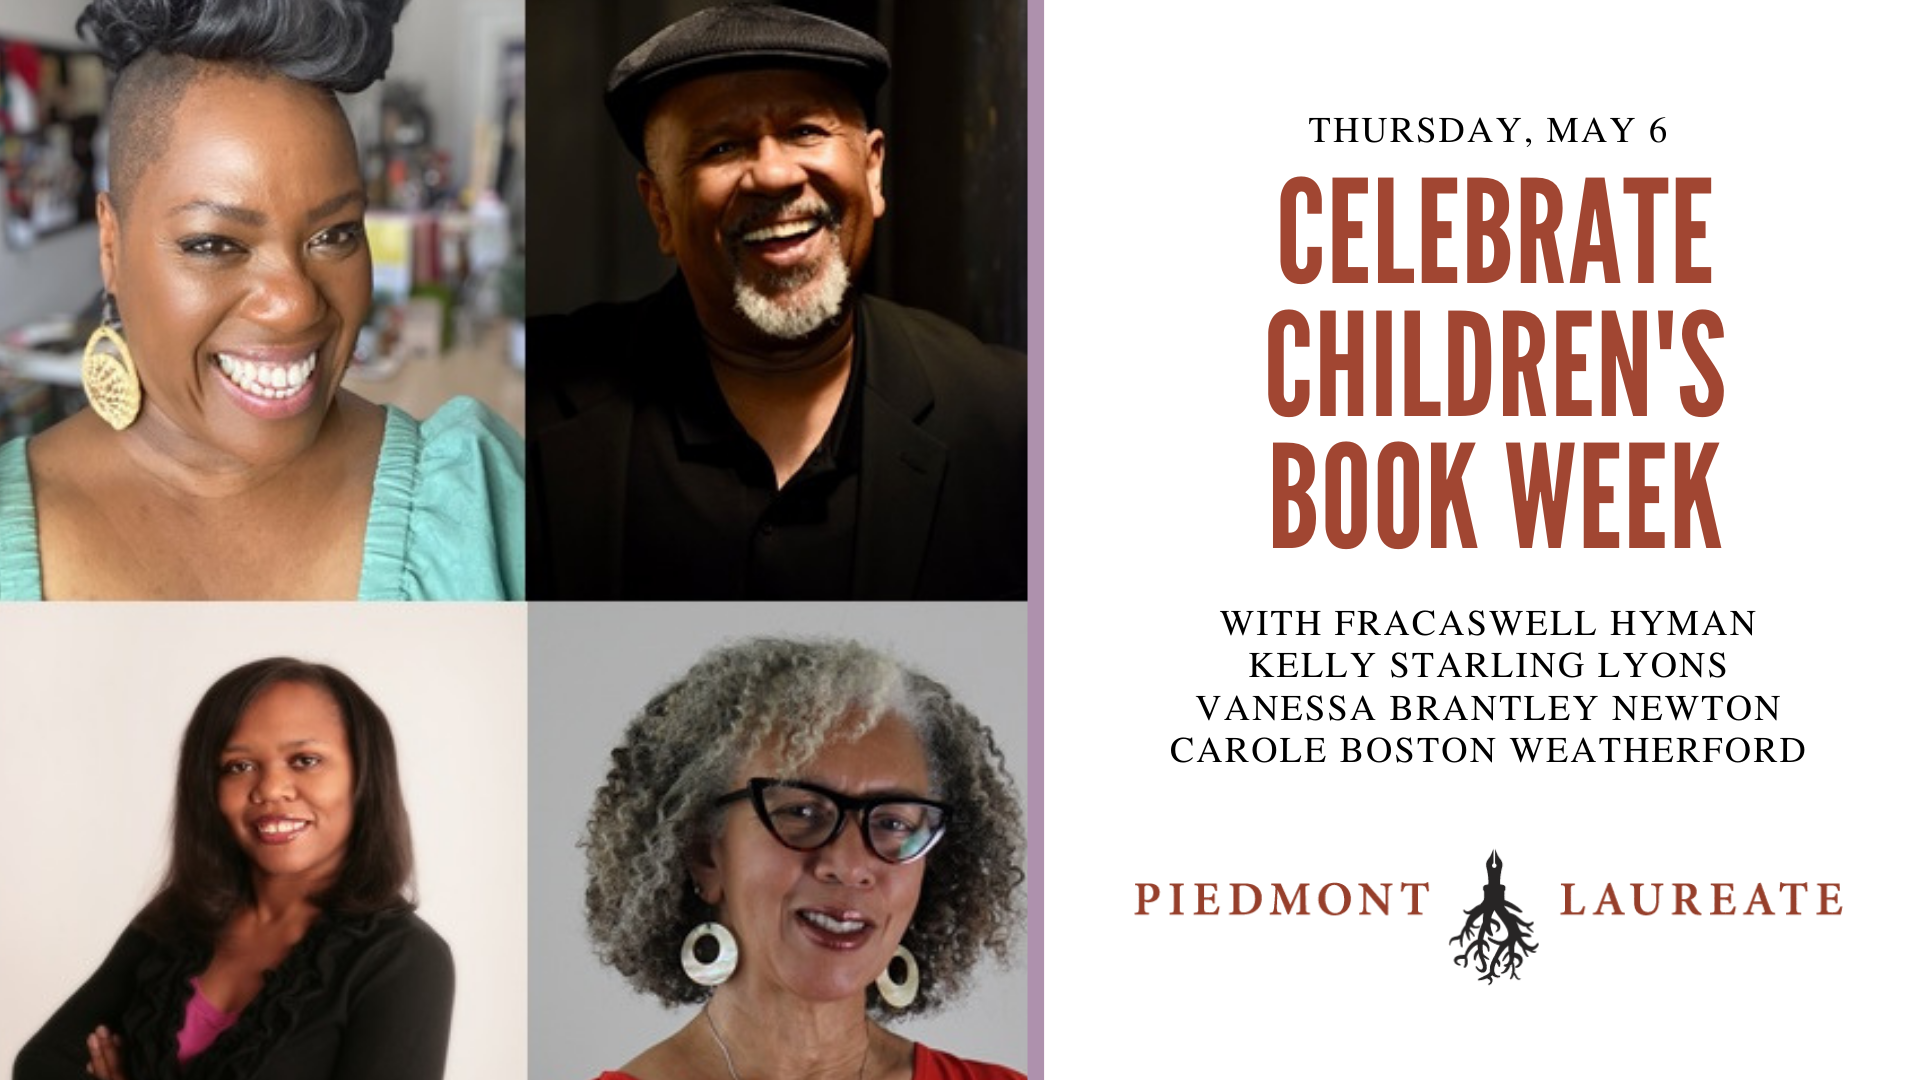 Thursday May 6th, Celebrate Children's Book week with Fracaswell Hyman, Kelly Starling Lyons, Vanessa Brantley Newton, and Carole Boston Weatherford